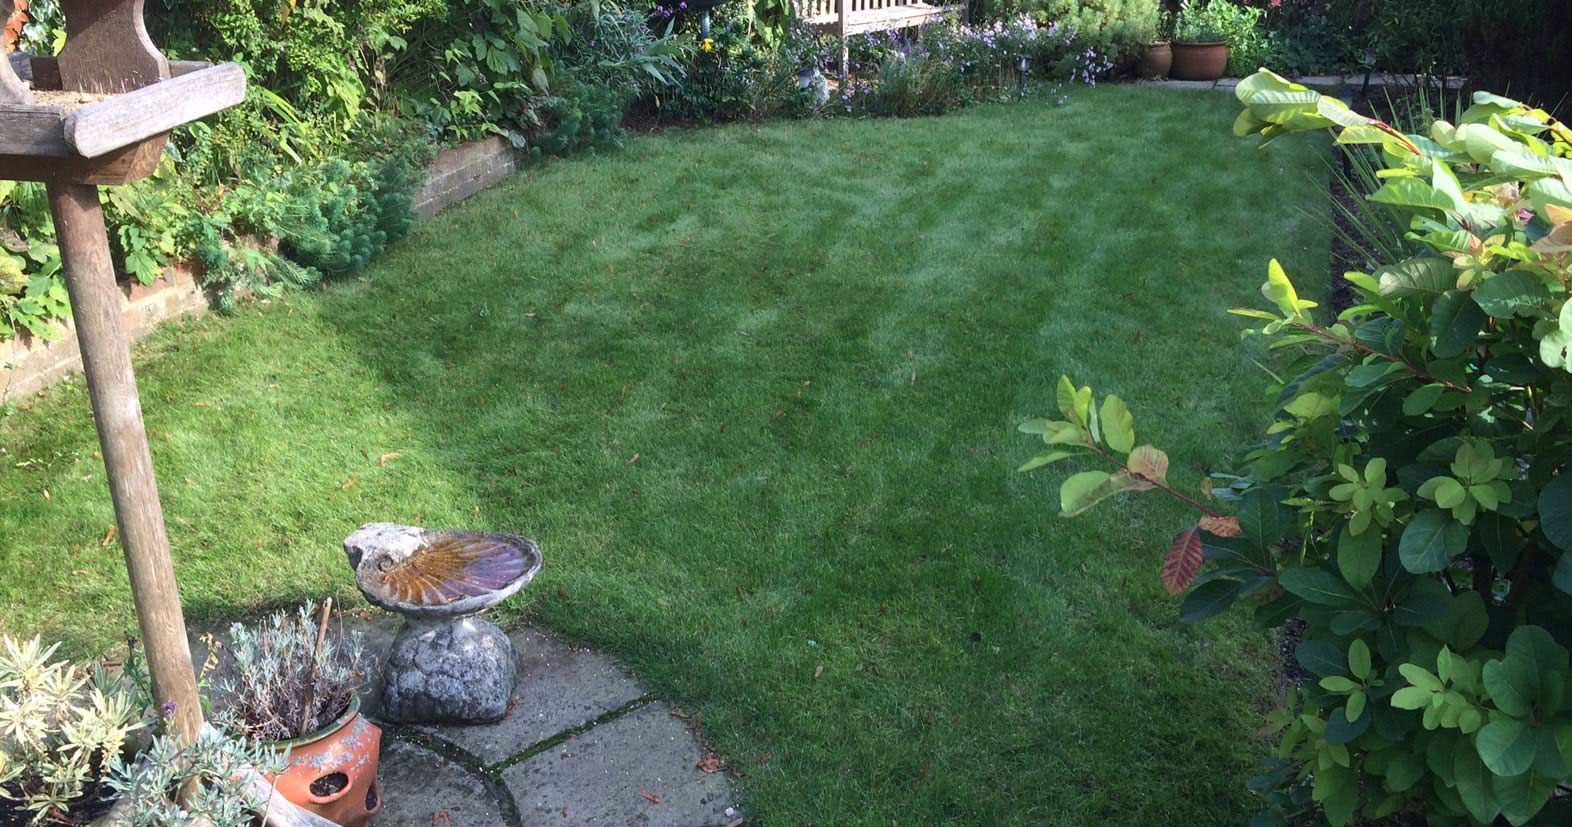 Get a healthy green lawn this summer with our lawn care